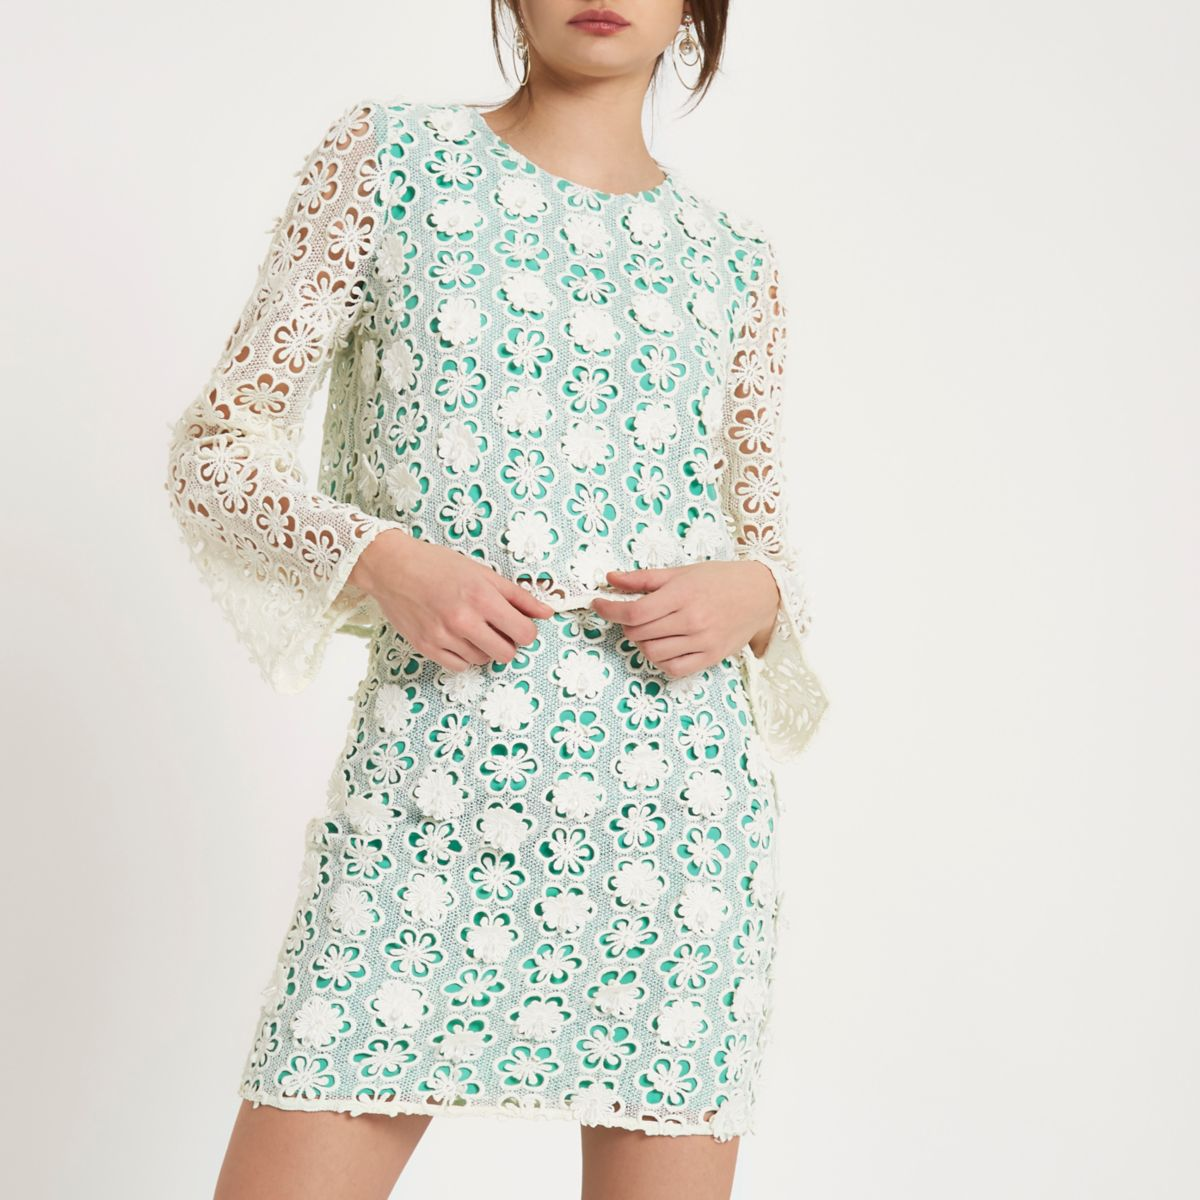 Green floral embellished lace mini skirt